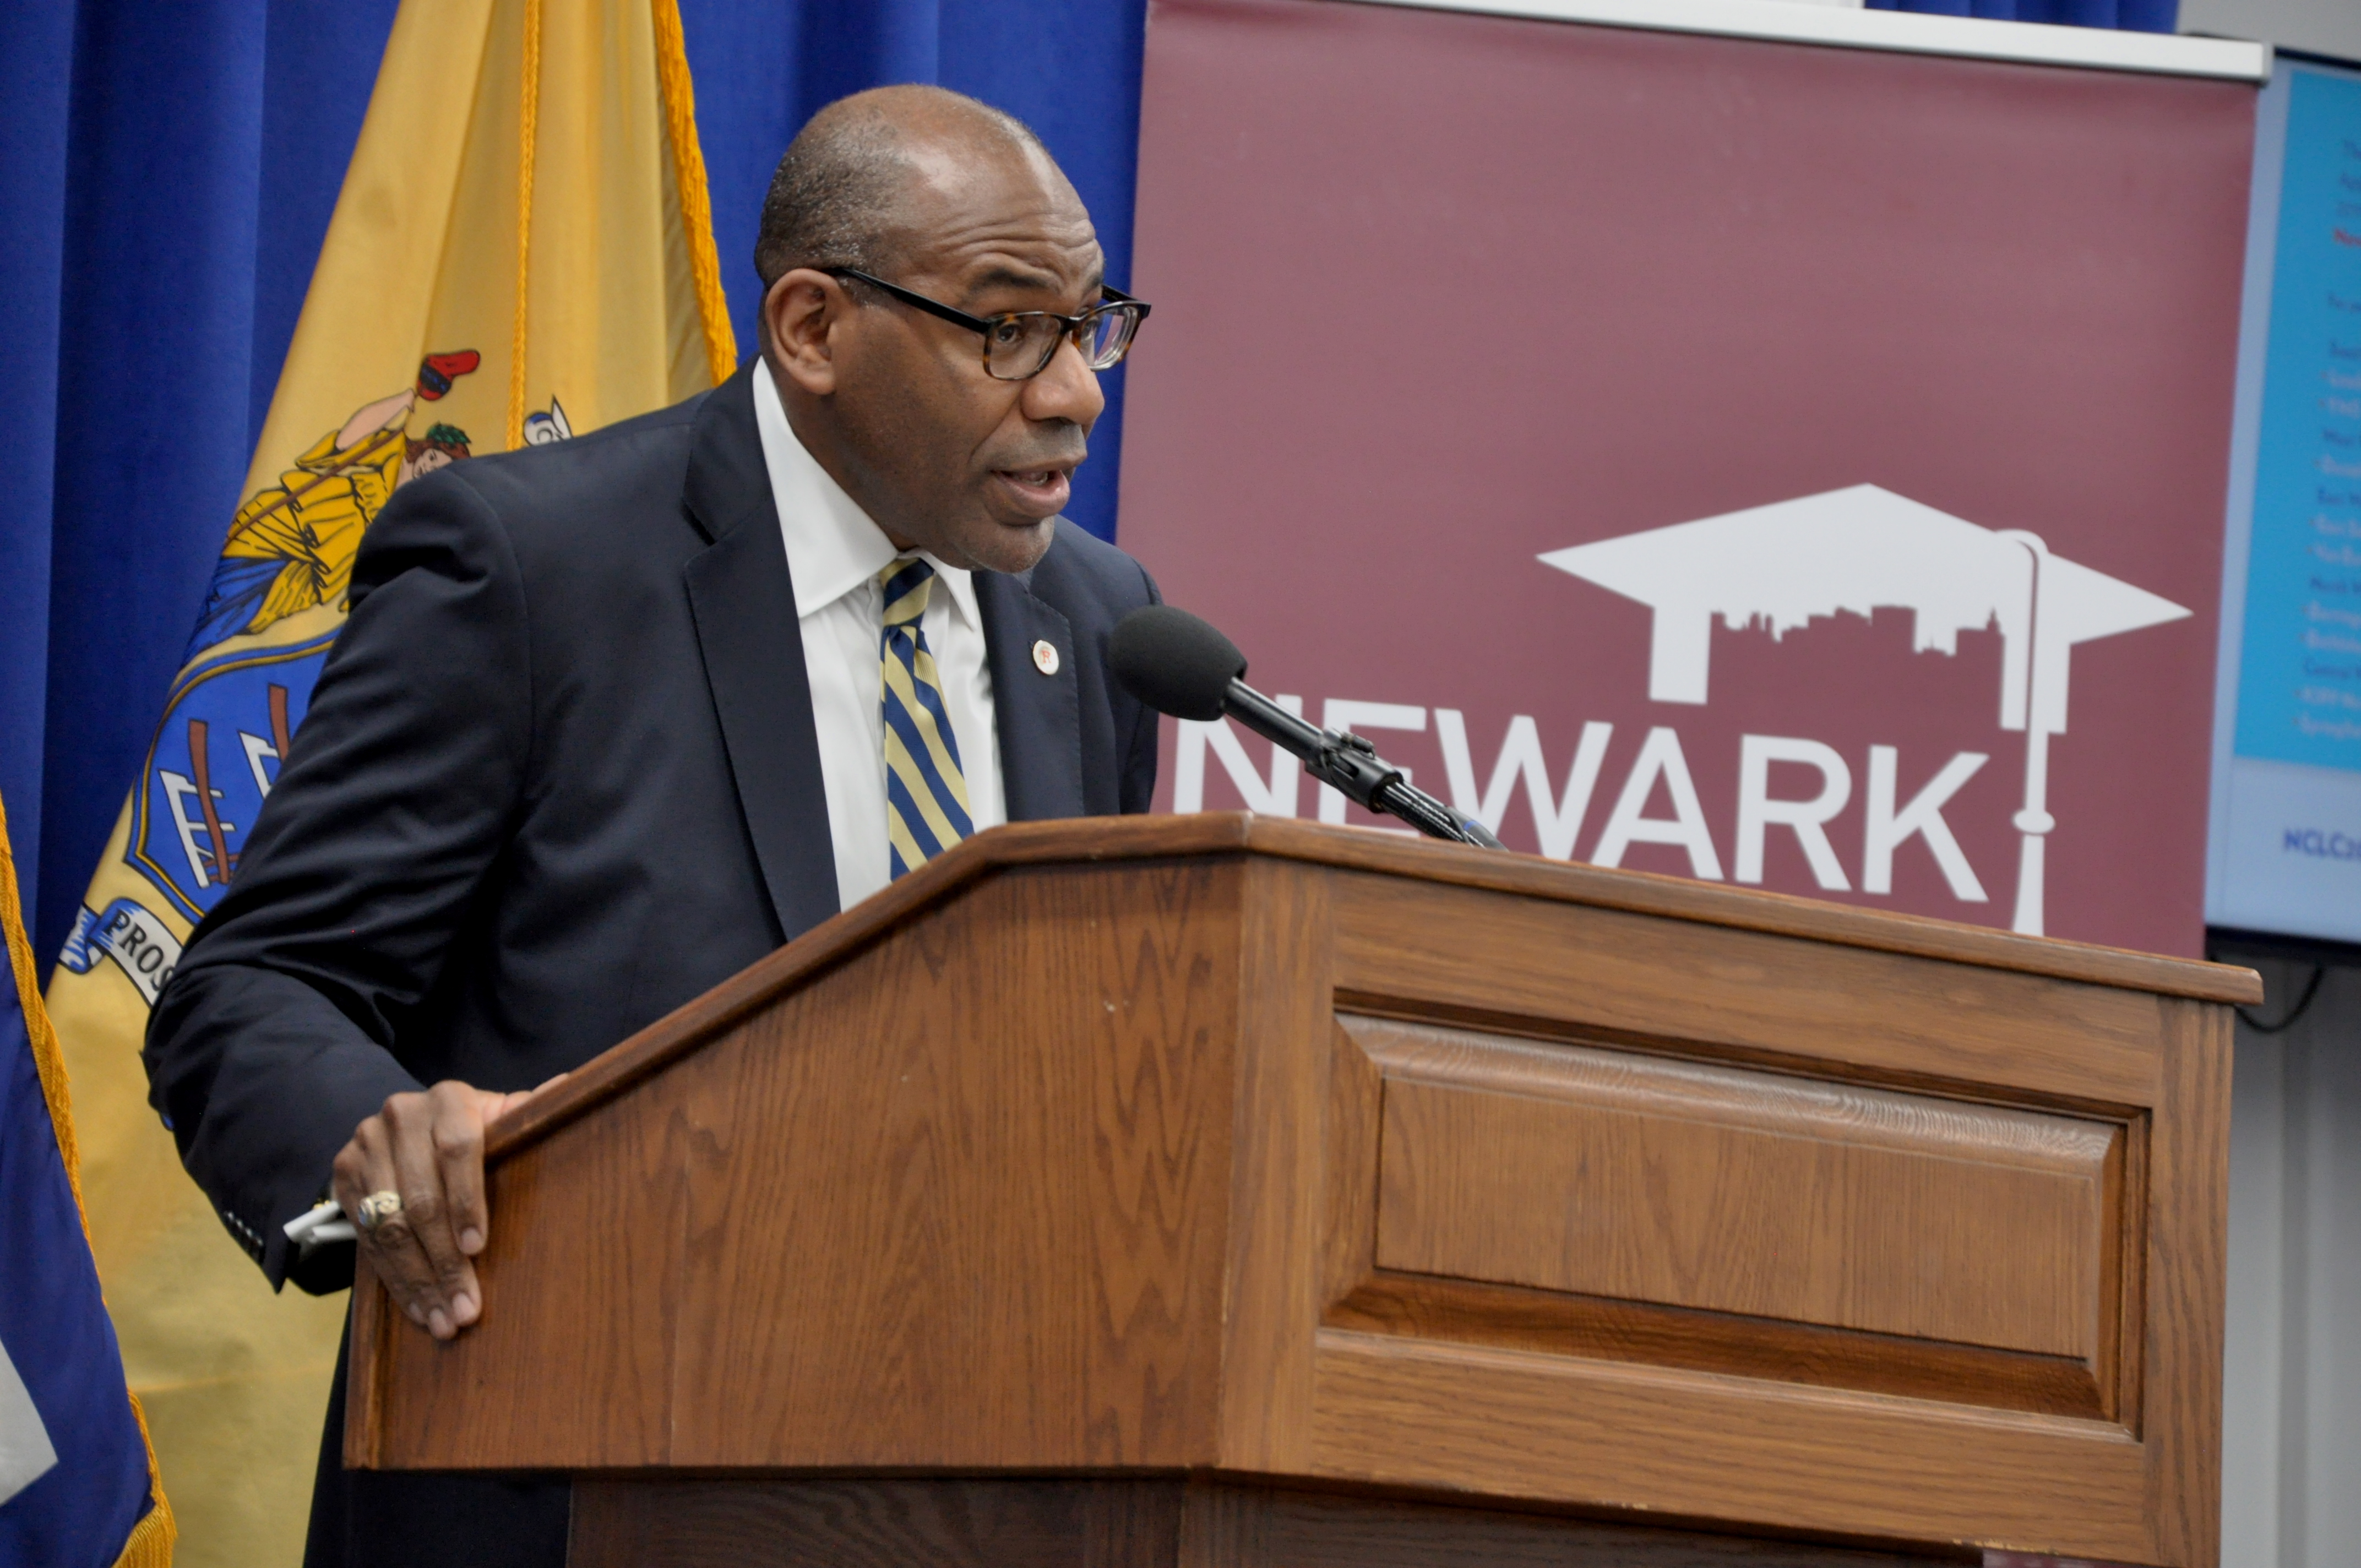 Reginald Lewis, executive director of the Newark City of Learning Collaborative, announces the launch of the campaign on Thursday at City Hall.